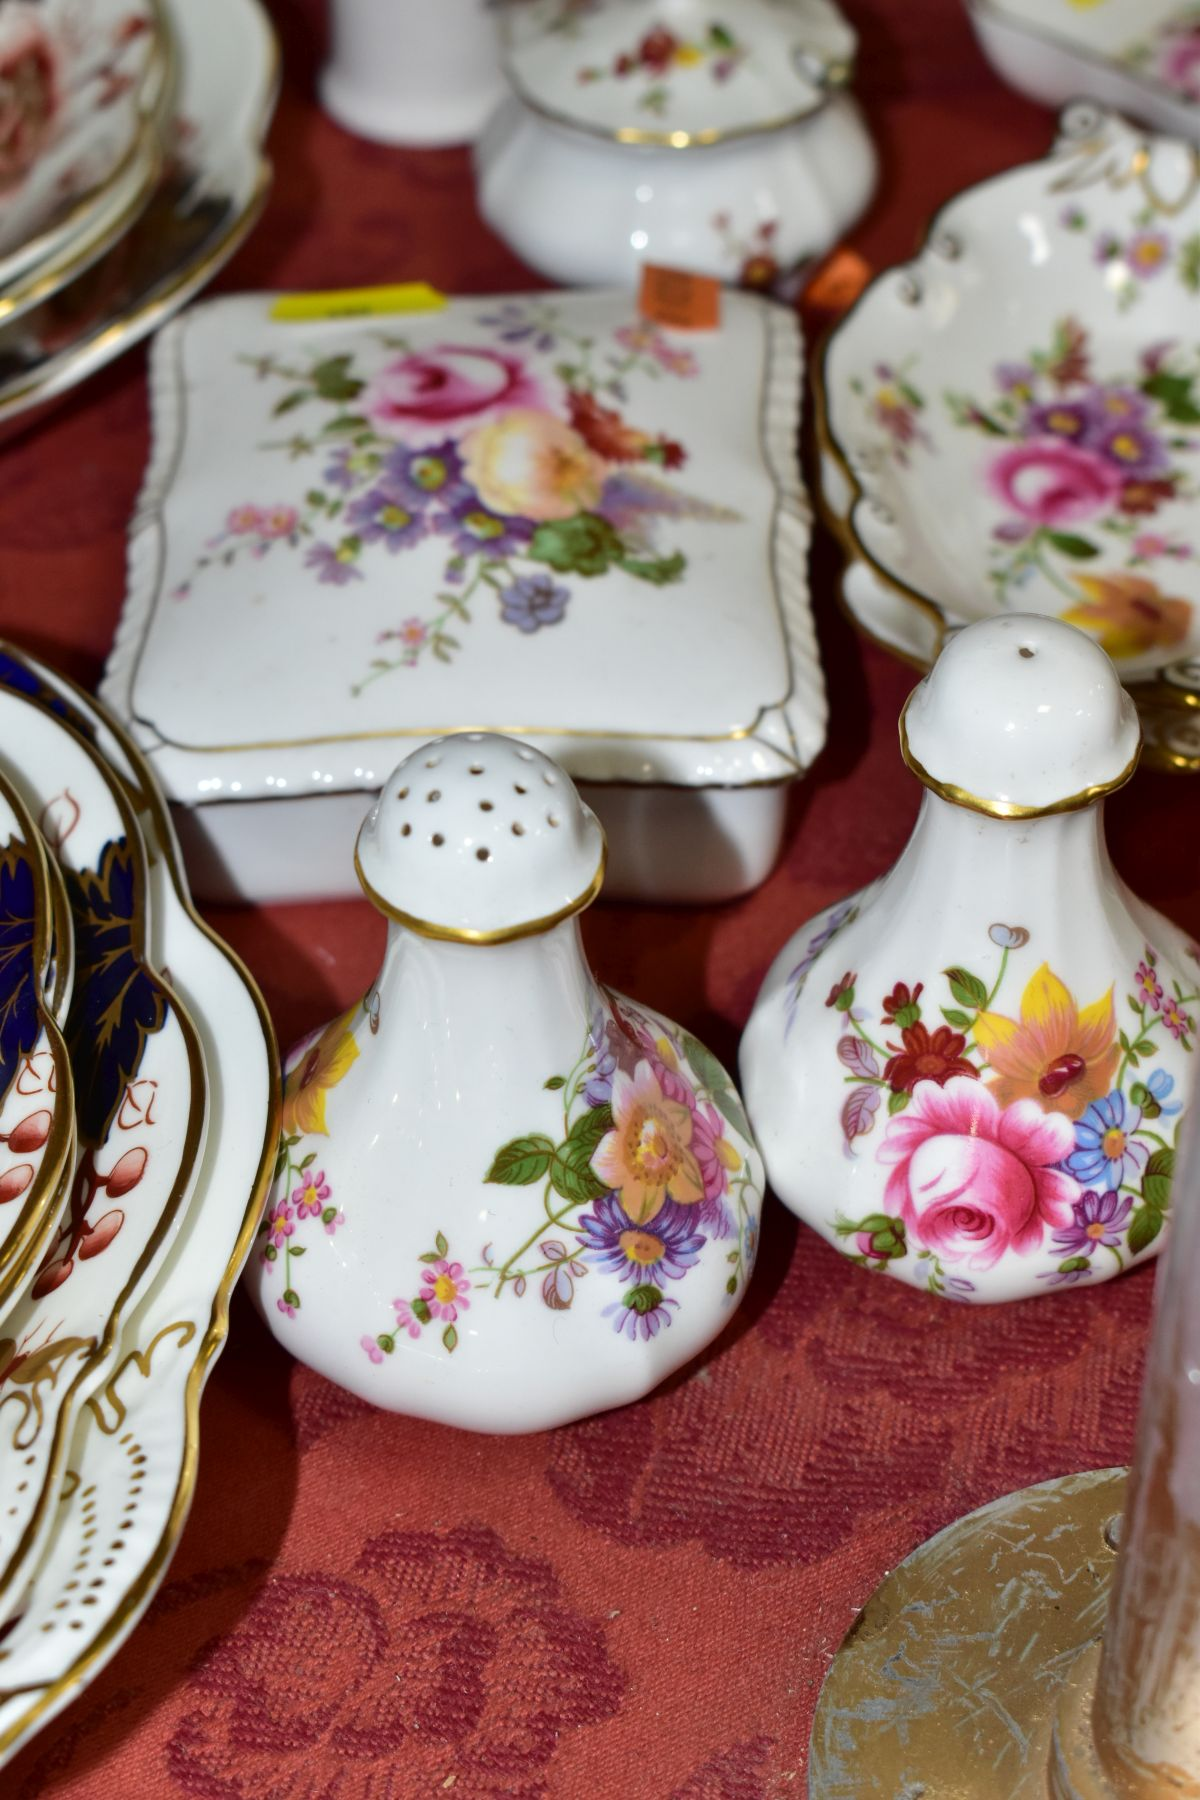 DECORATIVE CERAMICS, ETC, to include Royal Crown Derby 'Derby Posies' pintrays trinket box, - Image 11 of 13